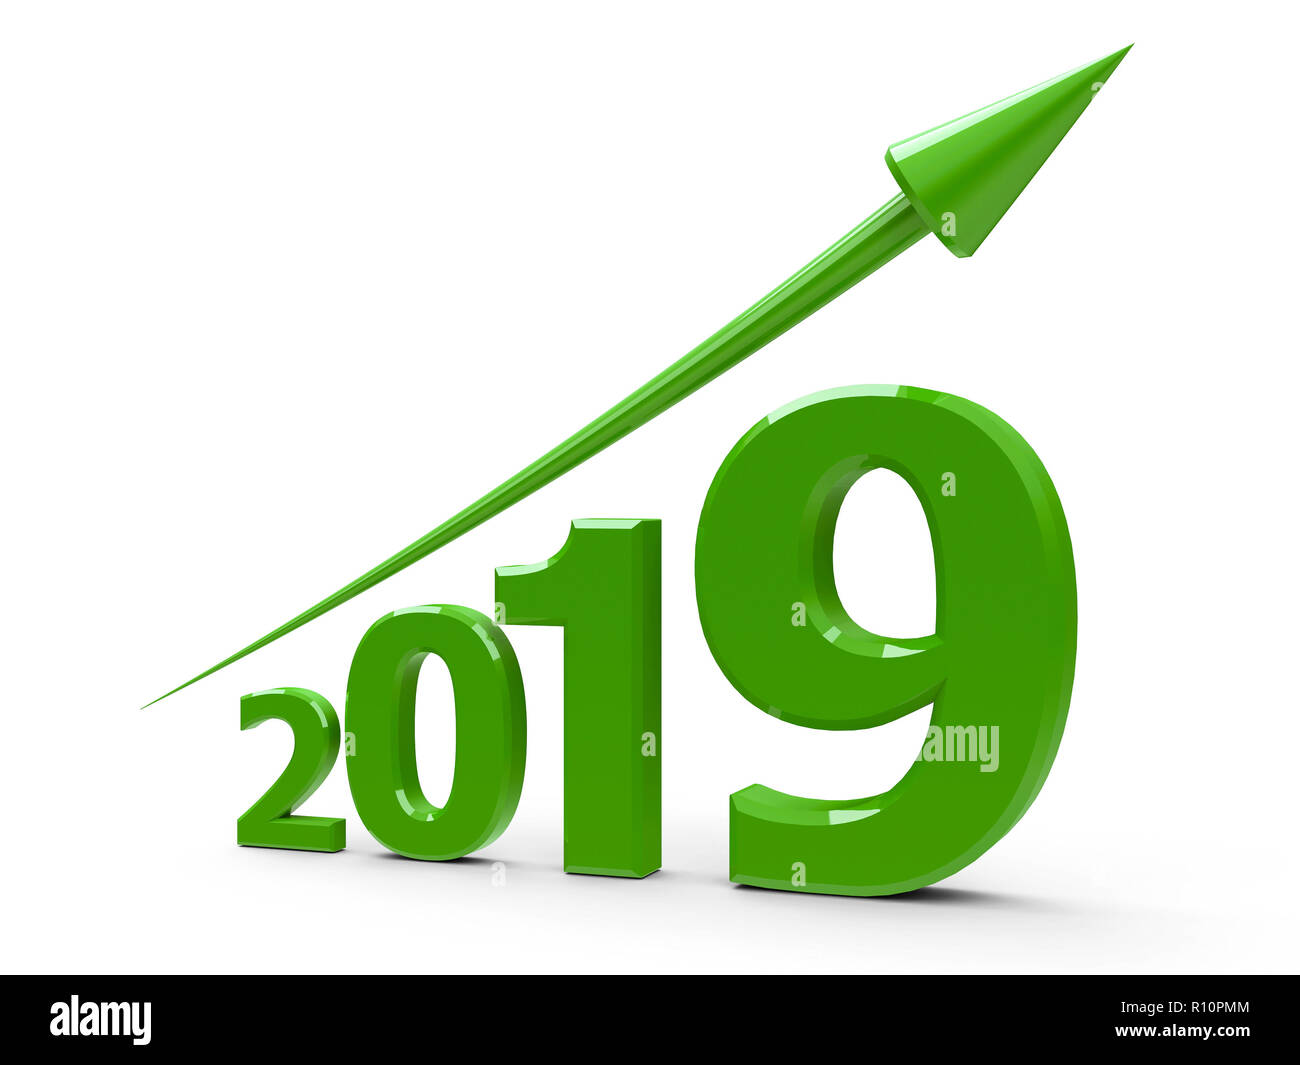 Green arrow up represents the growth in 2019 year, three-dimensional rendering, 3D illustration - Stock Image